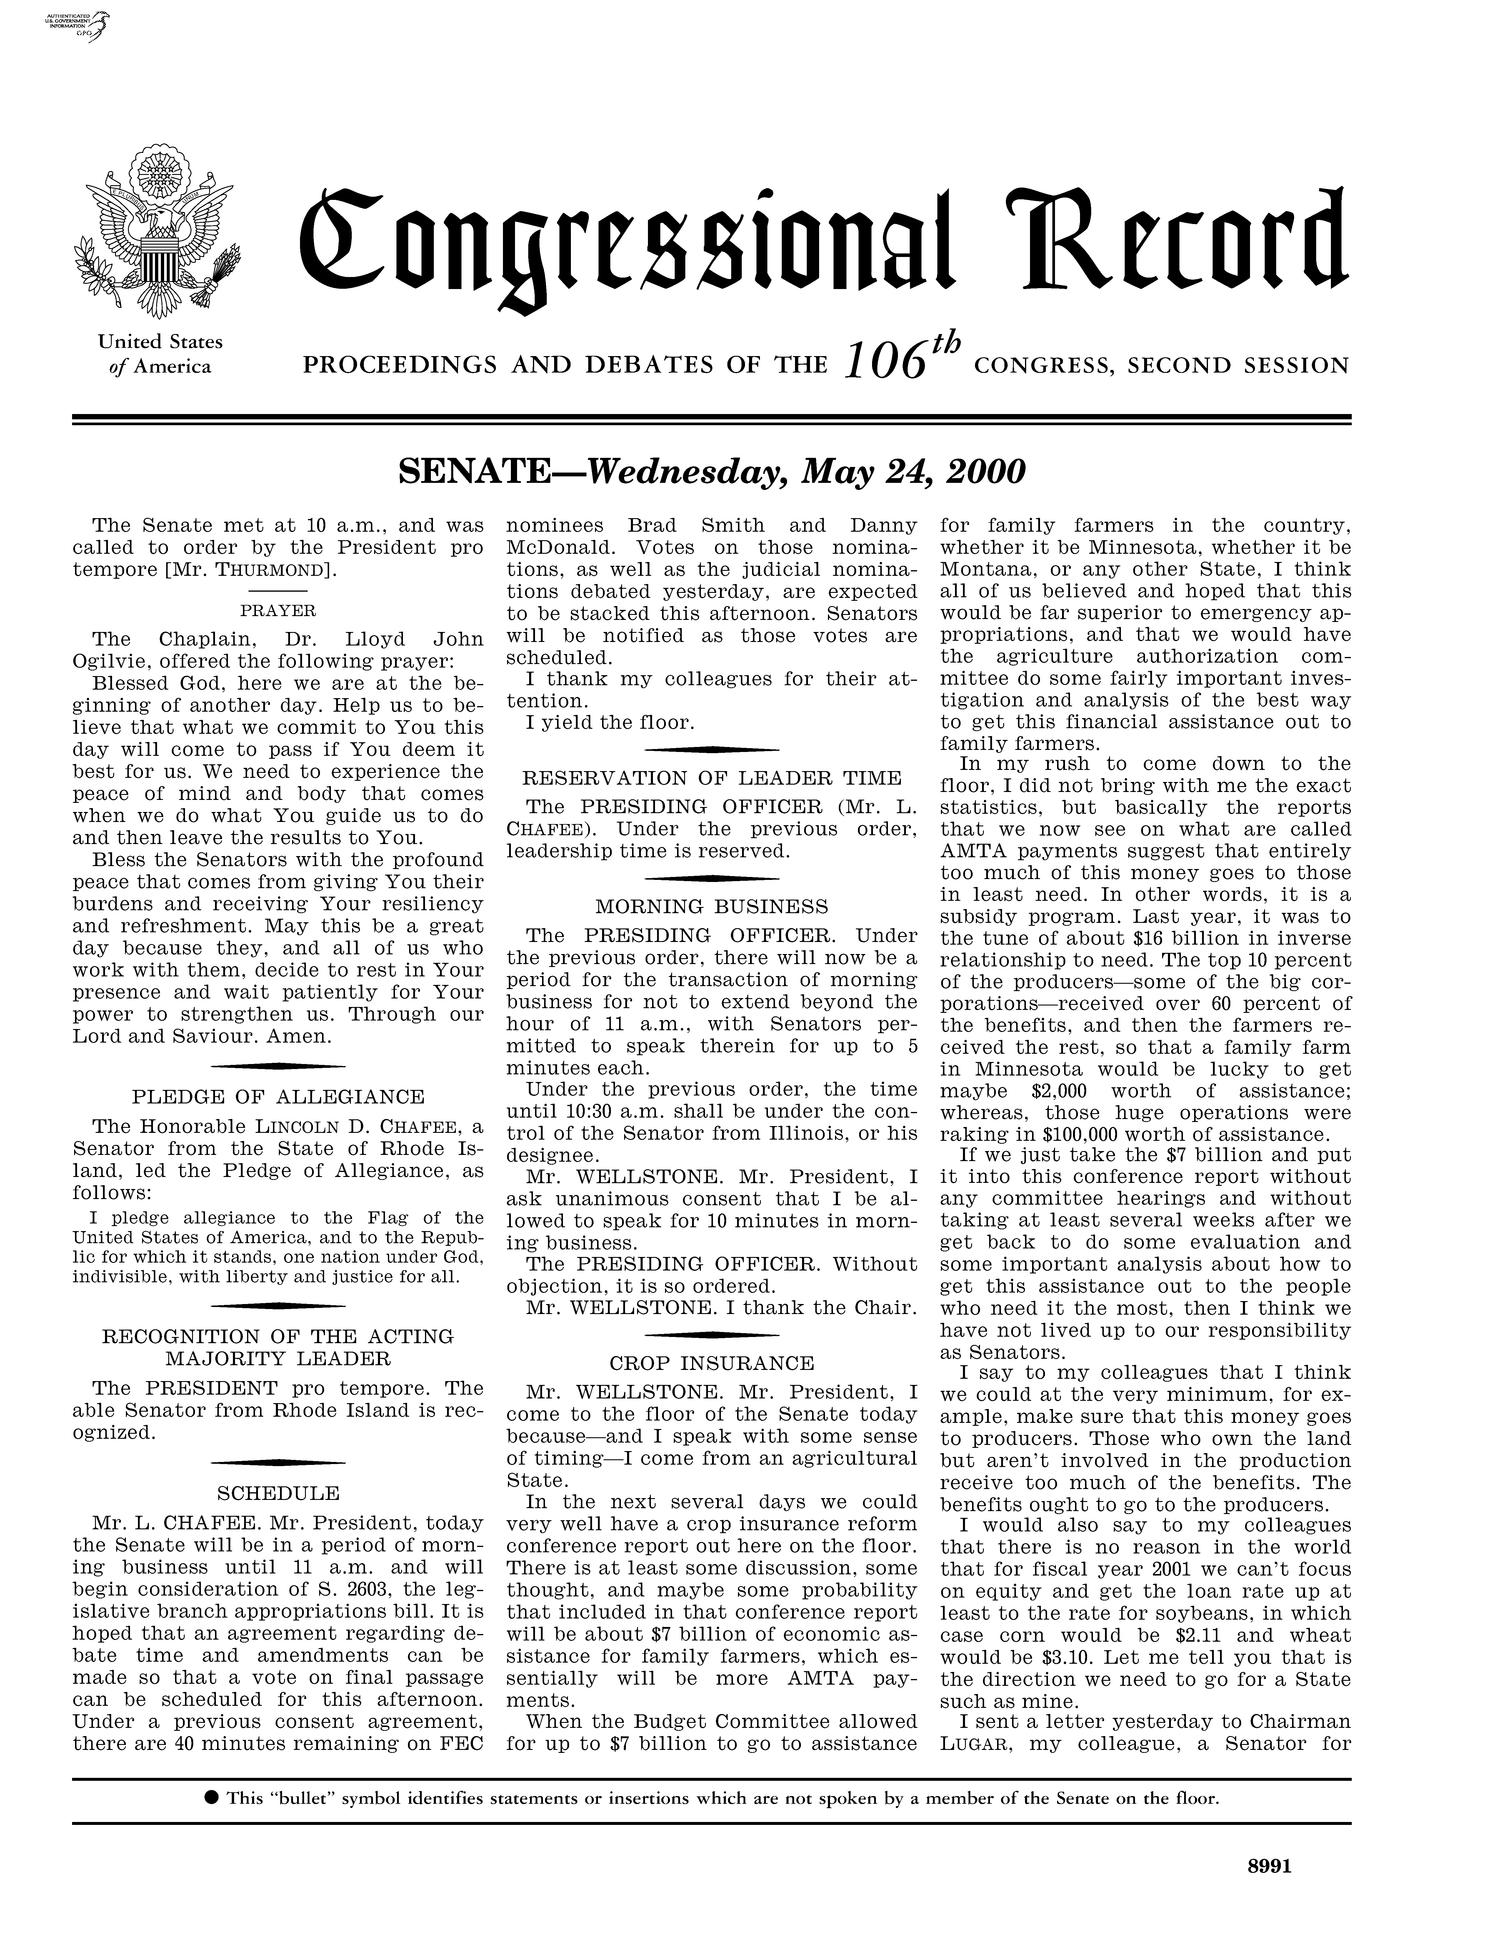 Congressional Record: Proceedings and Debates of the 106th Congress, Second Session, Volume 146, Part 7                                                                                                      None